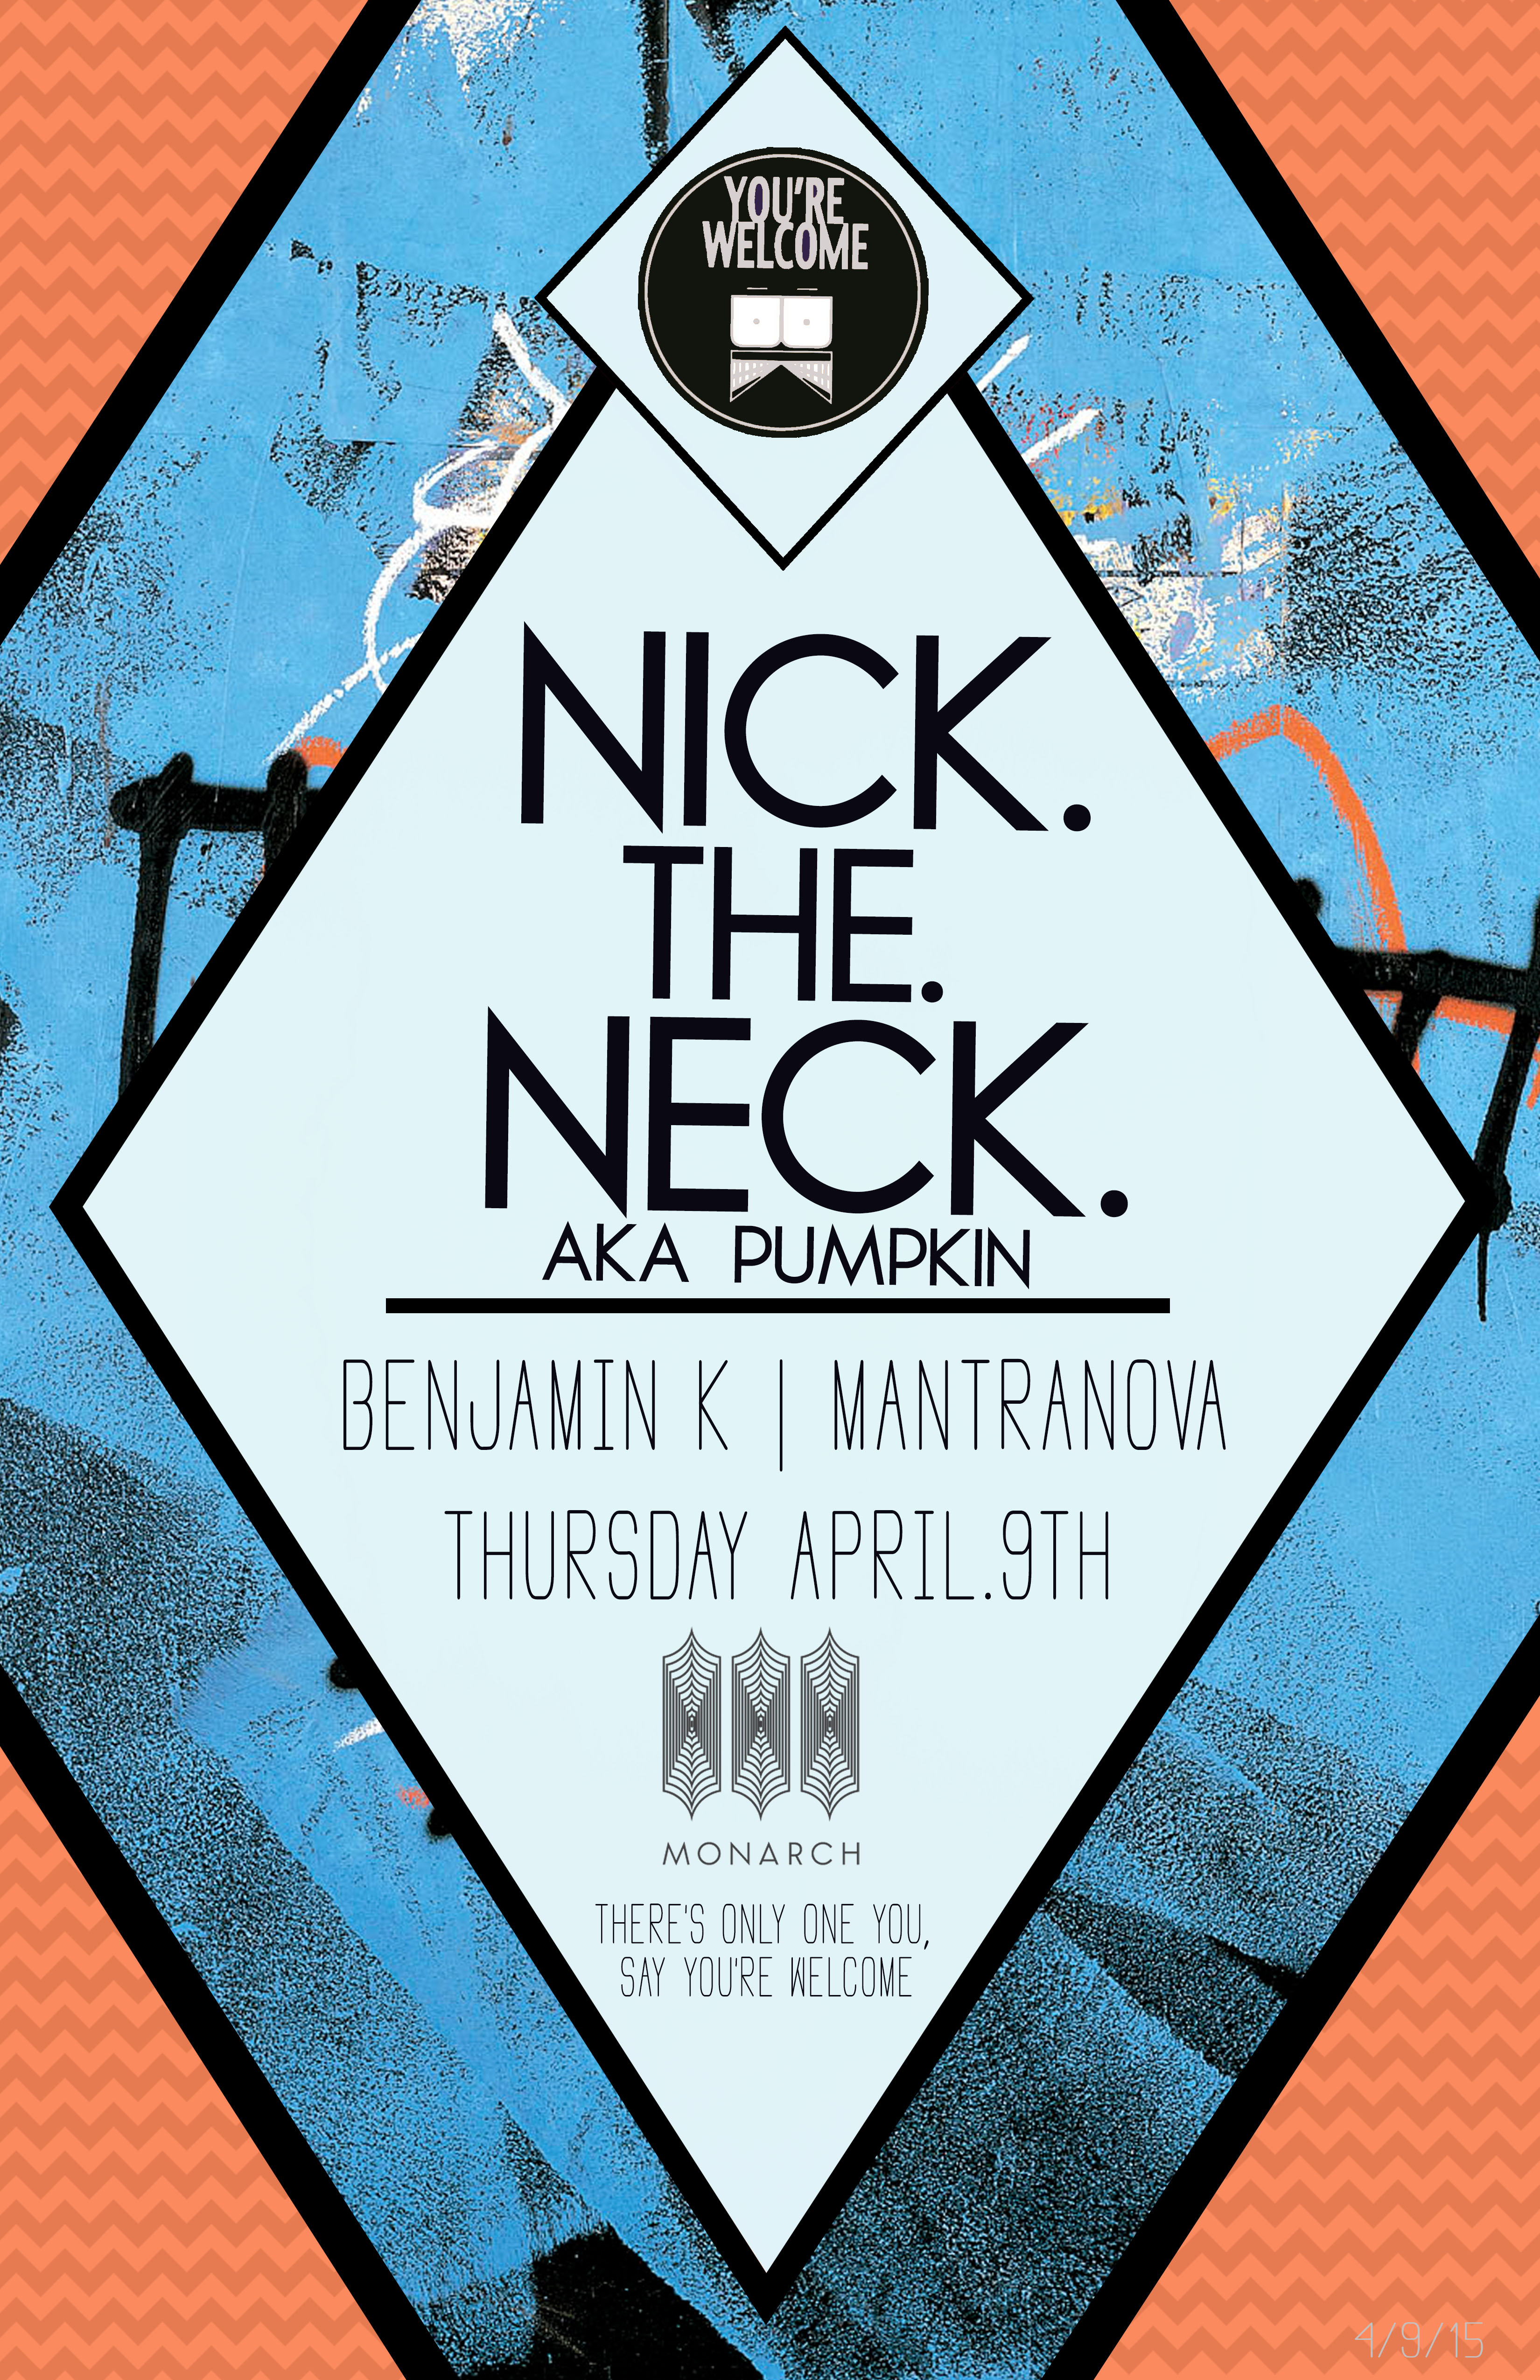 YW-Nick.the.neck.-4-9-15